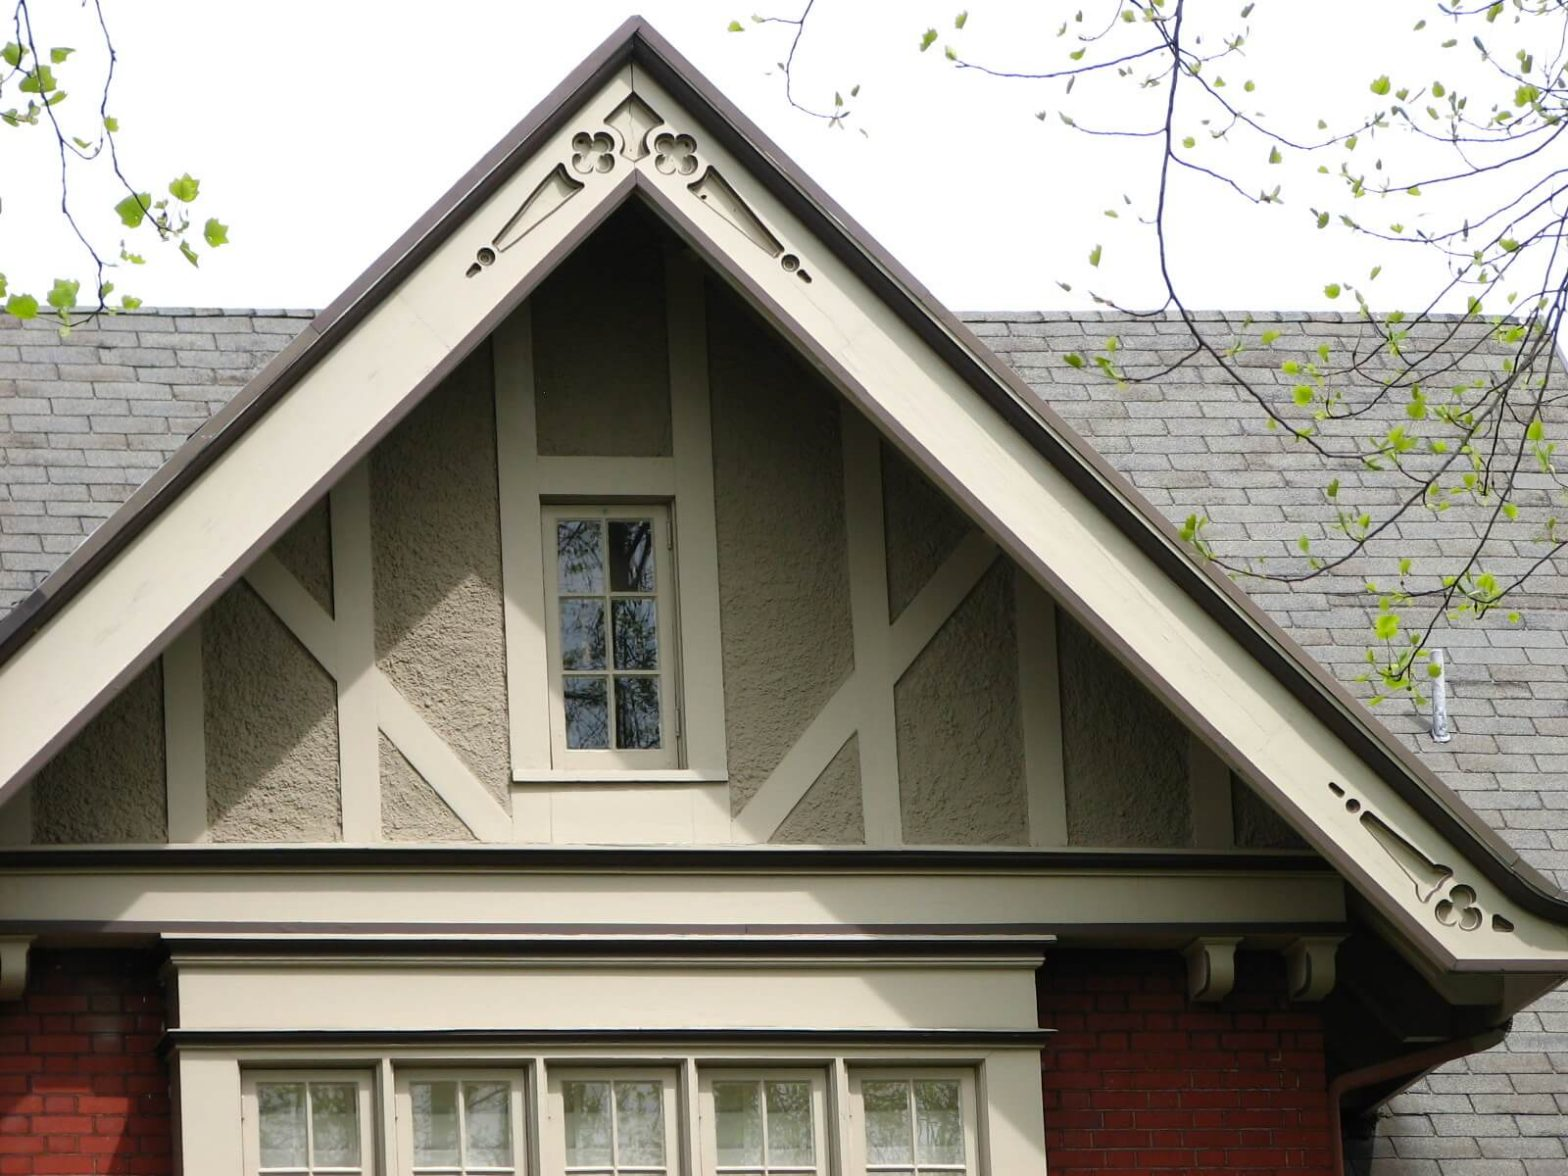 A Photo From Remarkable Roofing A Roofing Service Contractor In Knoxville, TN. | Give Remarkable Roofing A Call Today For The Best Roofing Services In Knoxville, Tennessee.}